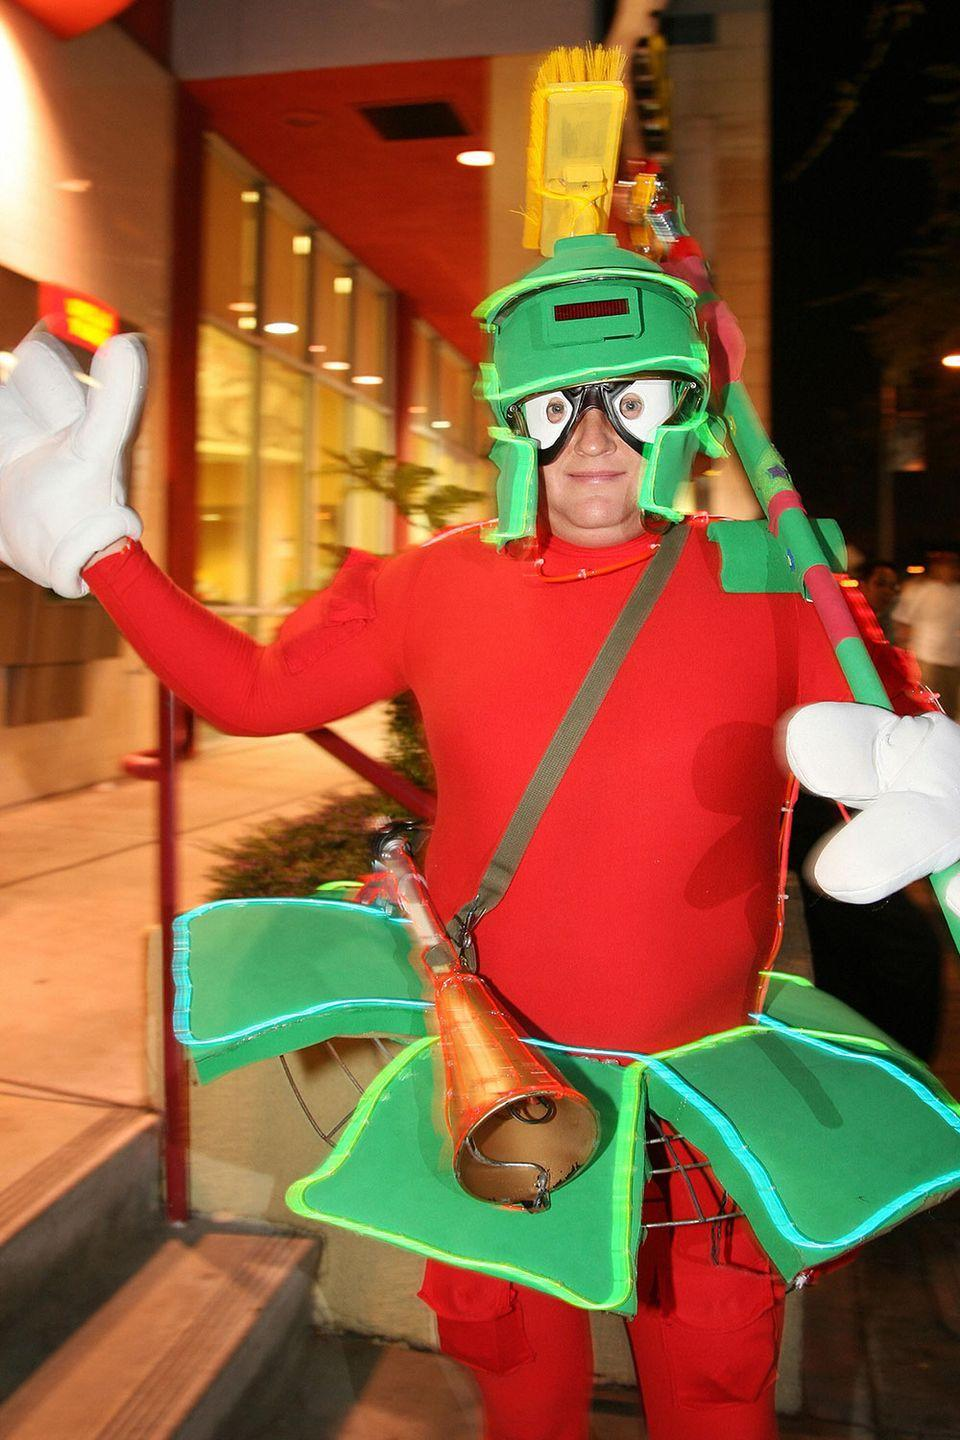 <p>Marvin the Martian is a classic <em>Looney Tunes </em>character and a quality costume choice.</p>